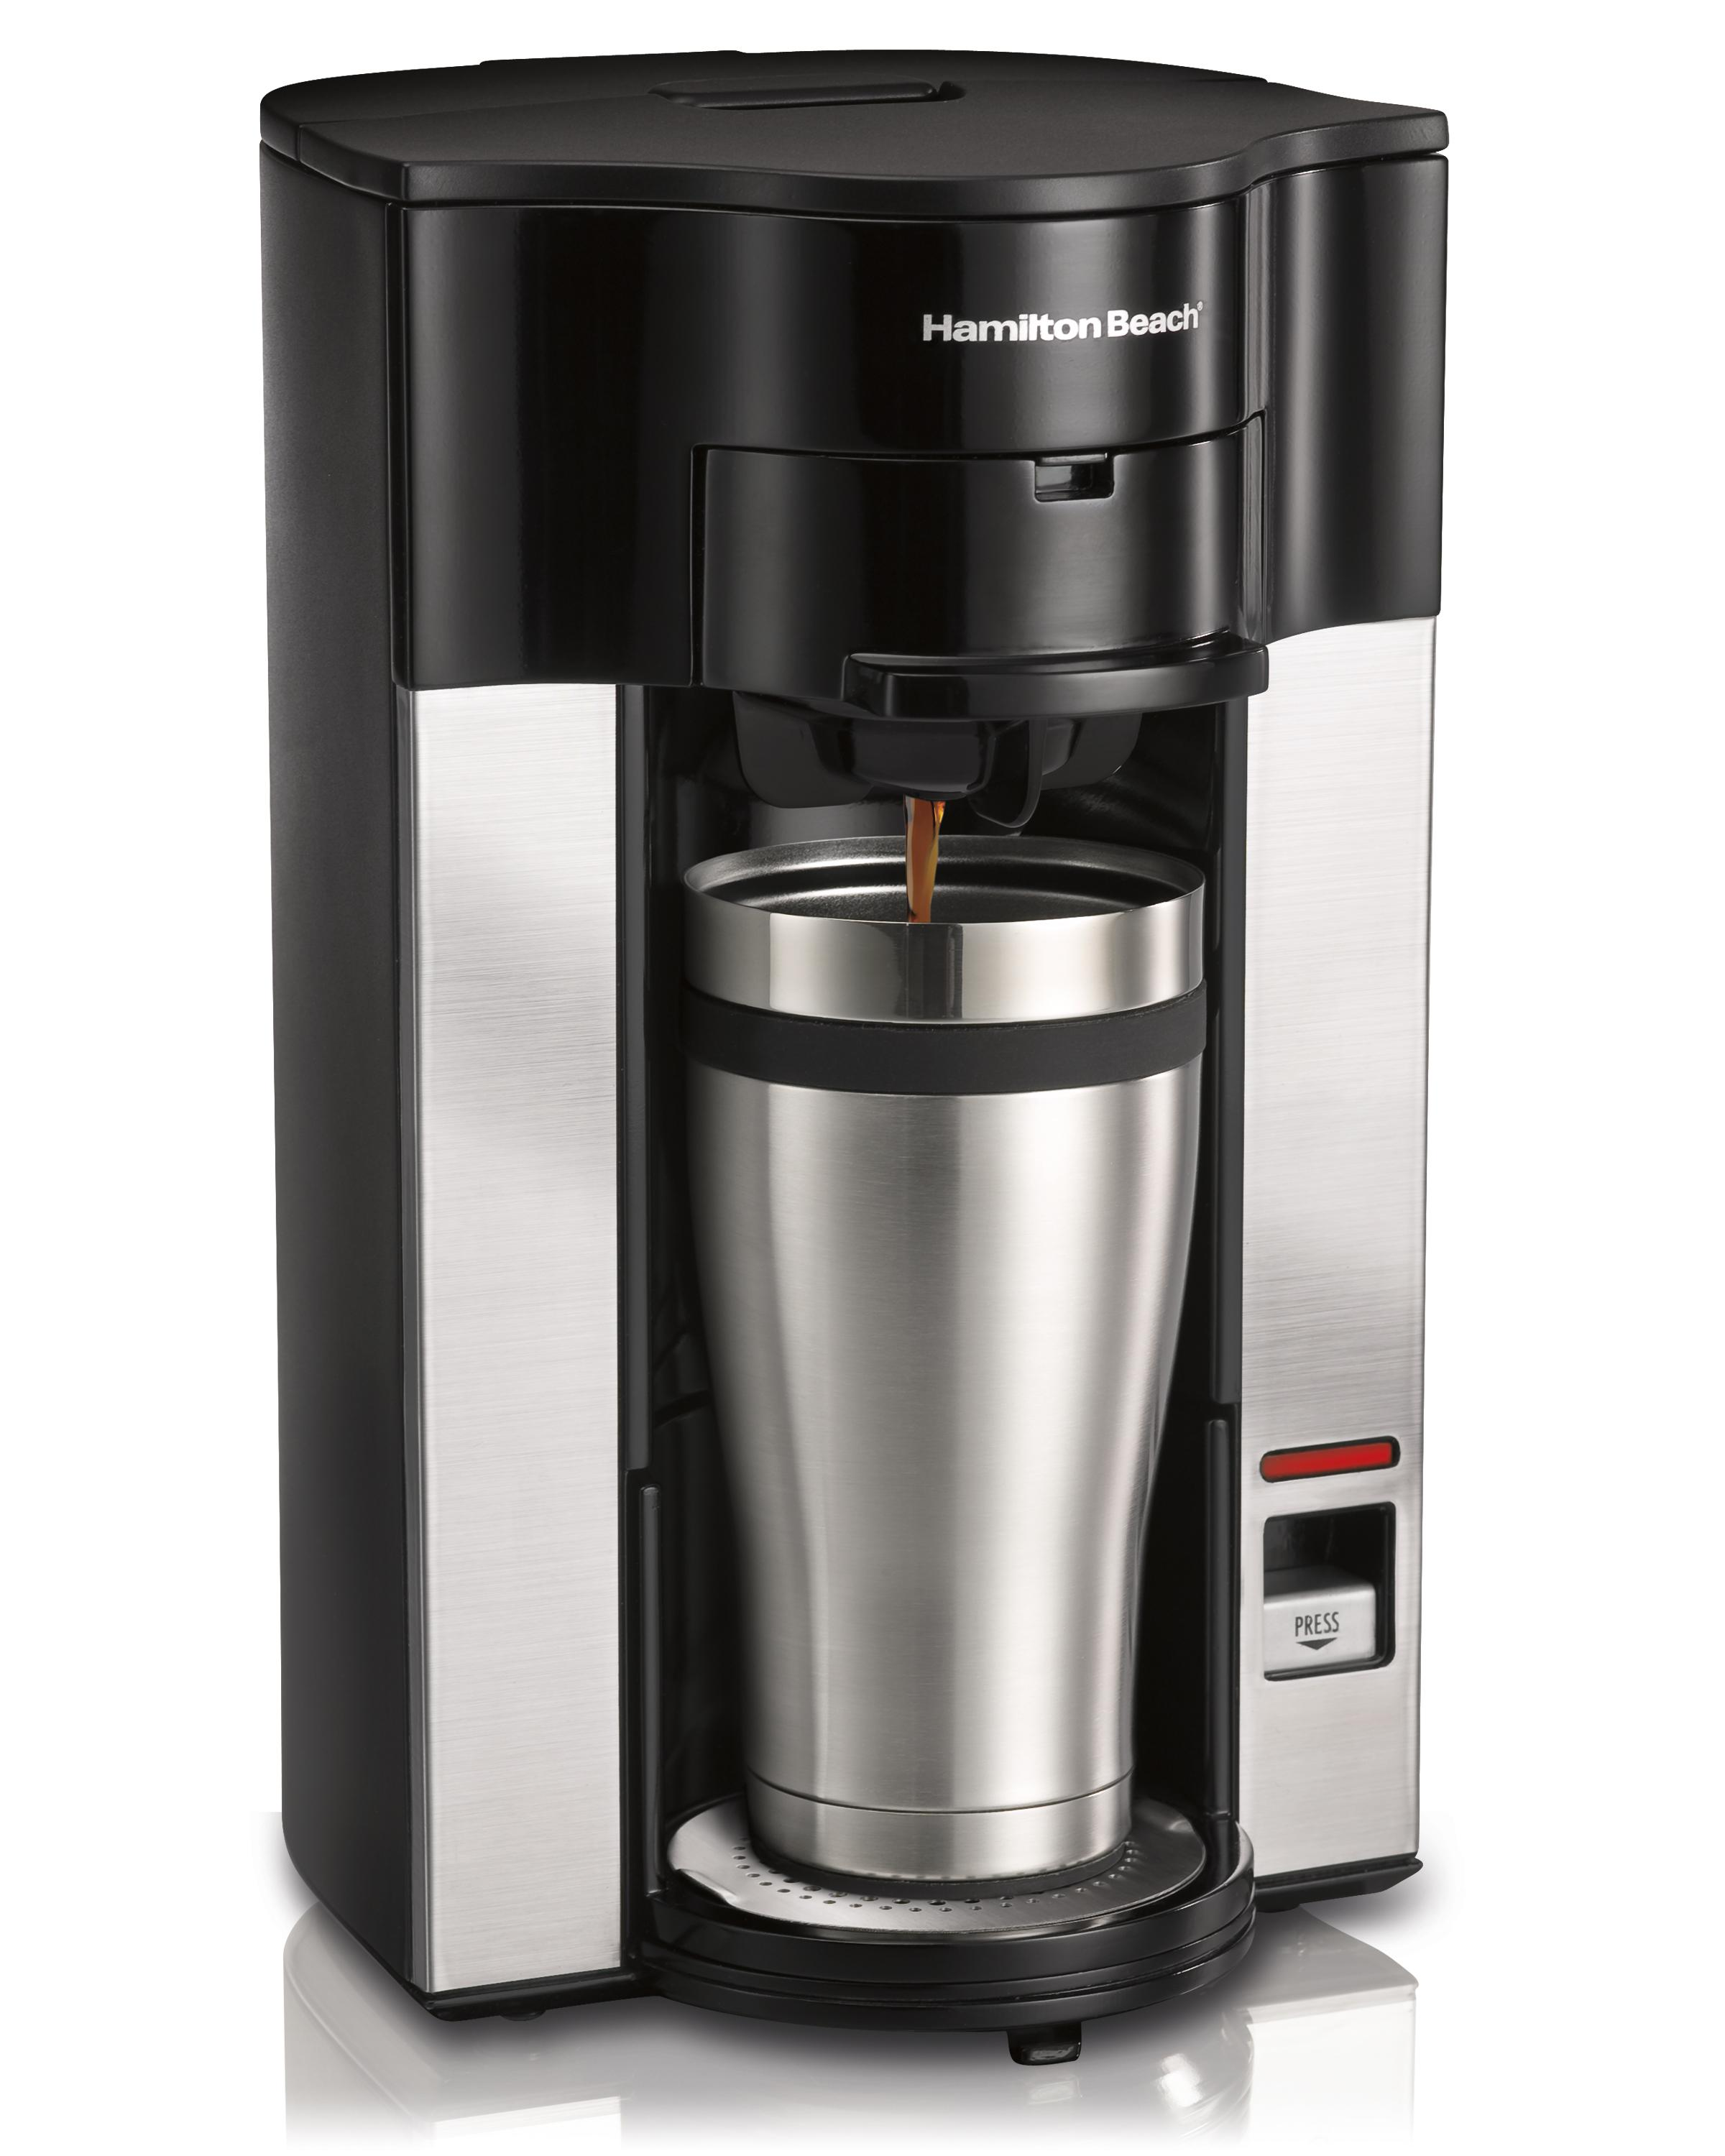 Single Cup Coffee Maker Uses Grounds : Hamilton Beach 1Cup Coffee Maker Brewer W/8 Senseo POD 40094499908 eBay